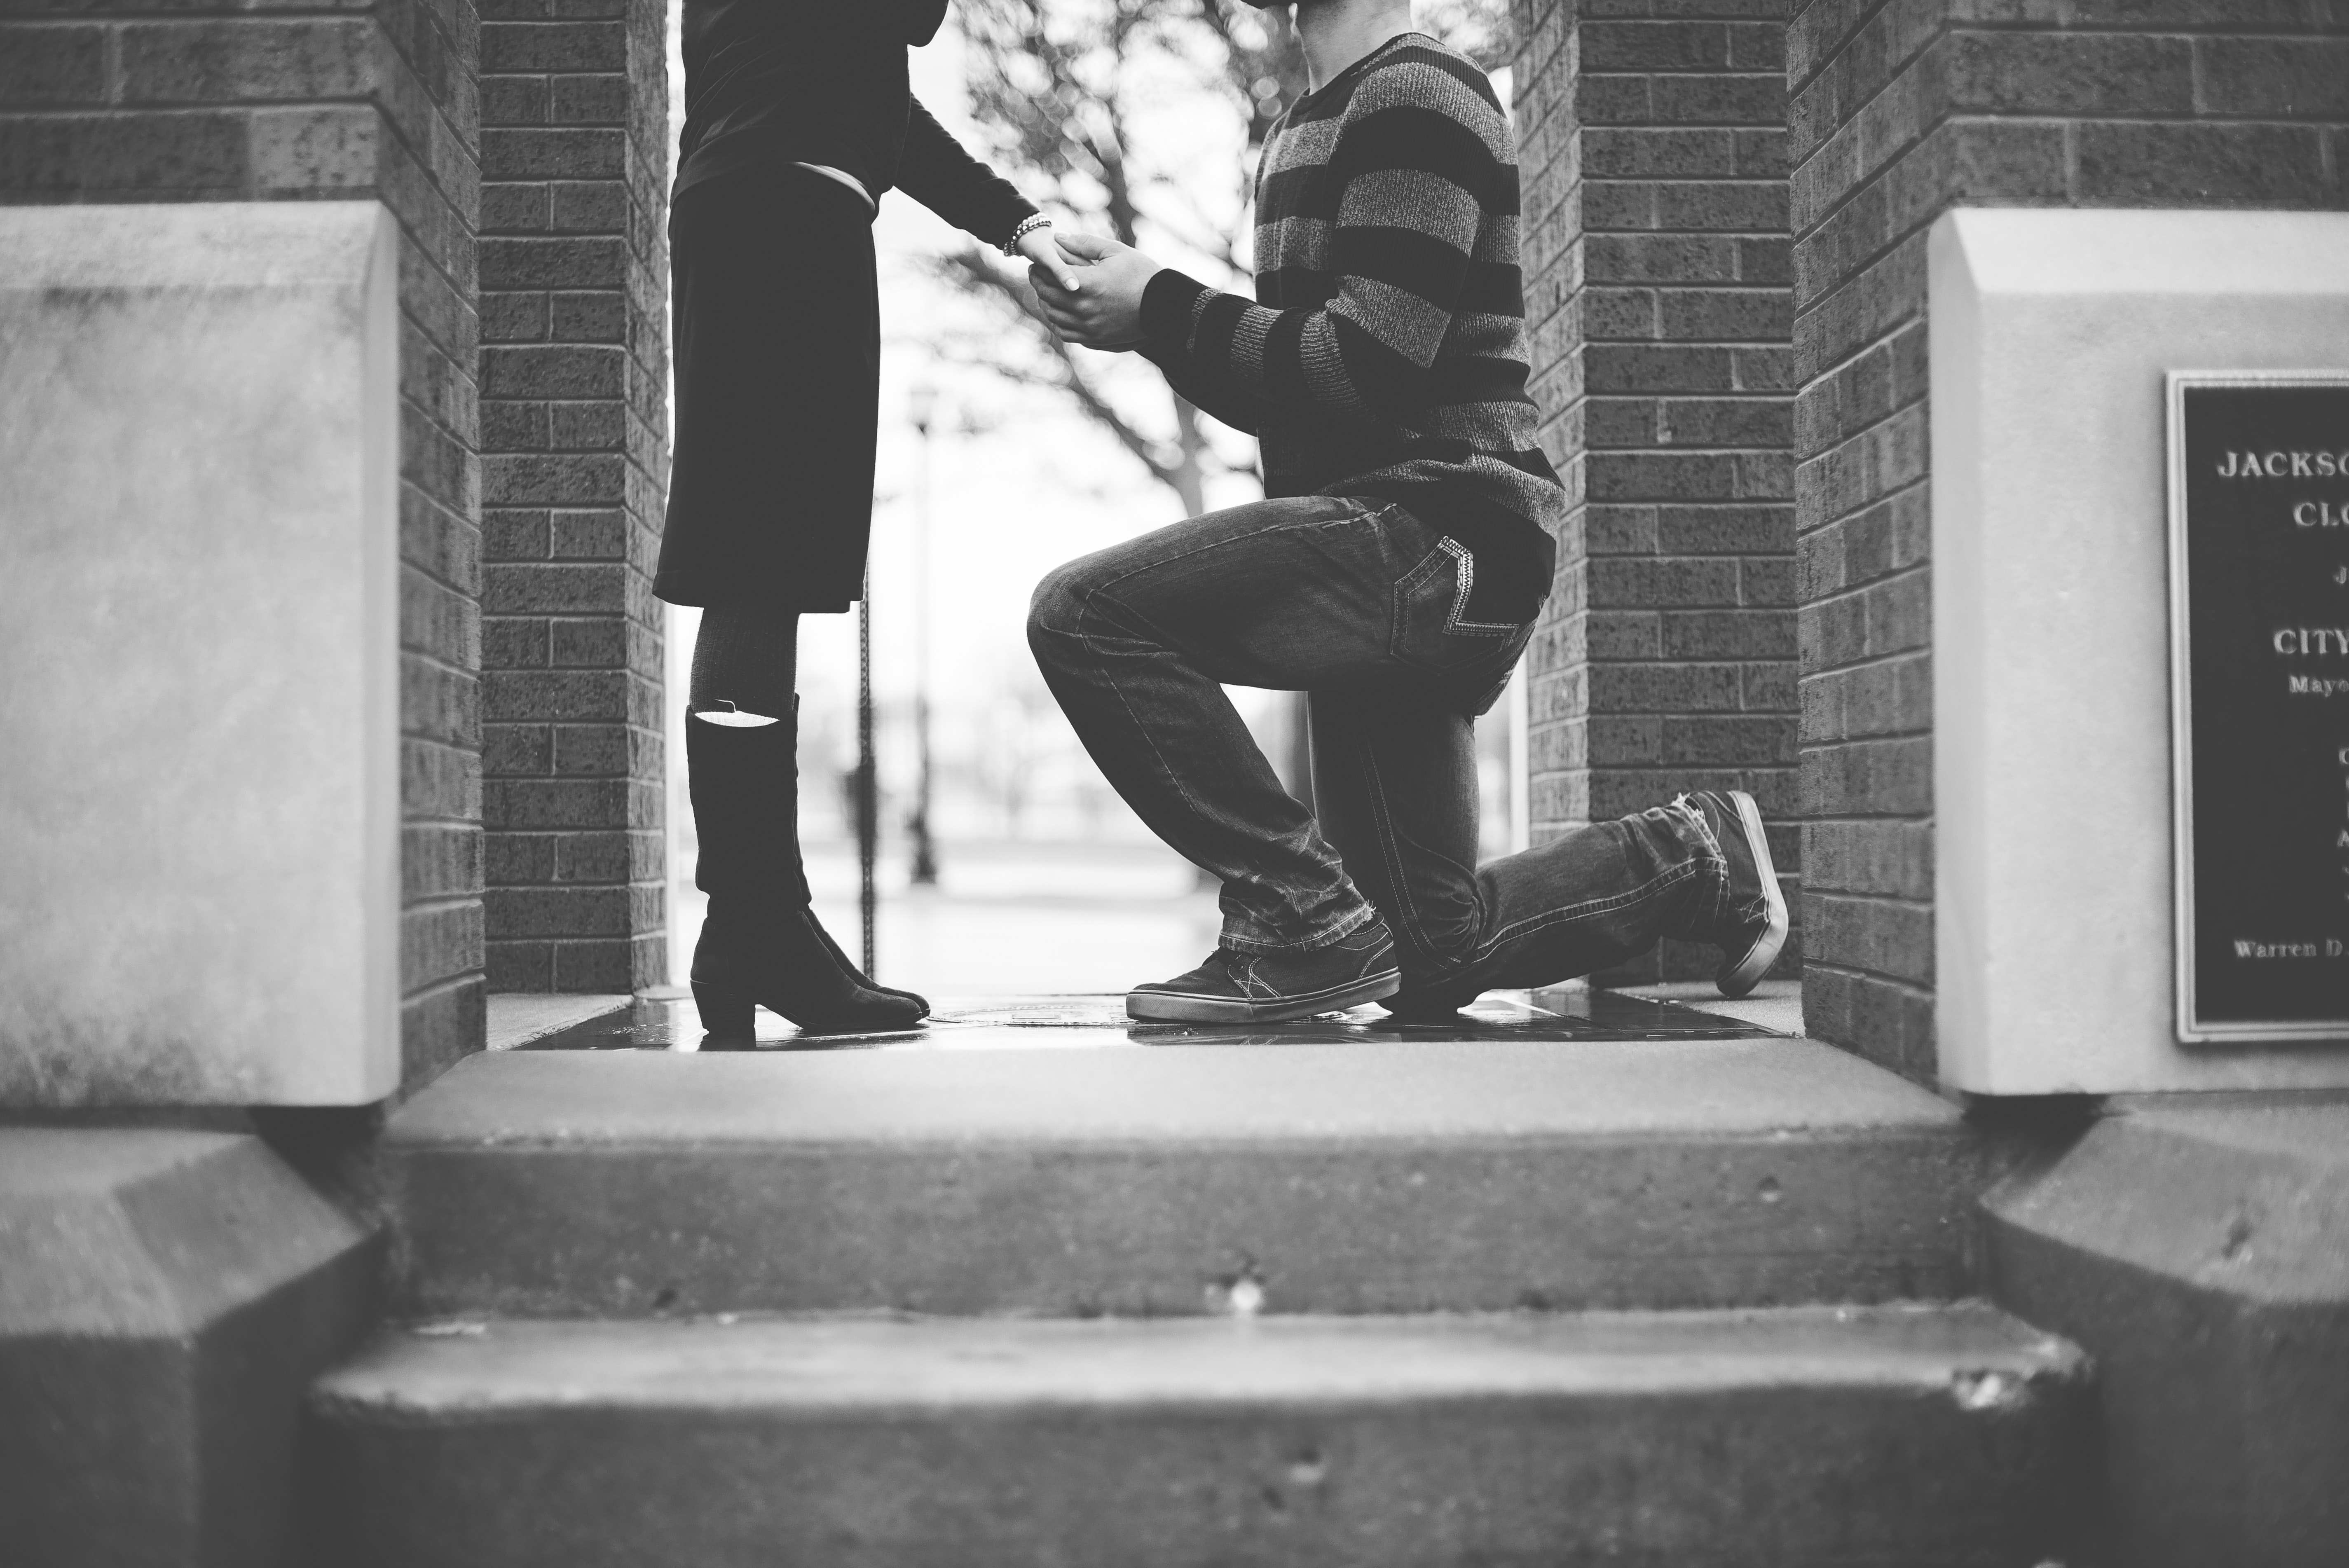 Black and white photo of man bent on one knew, proposing to his girlfriend